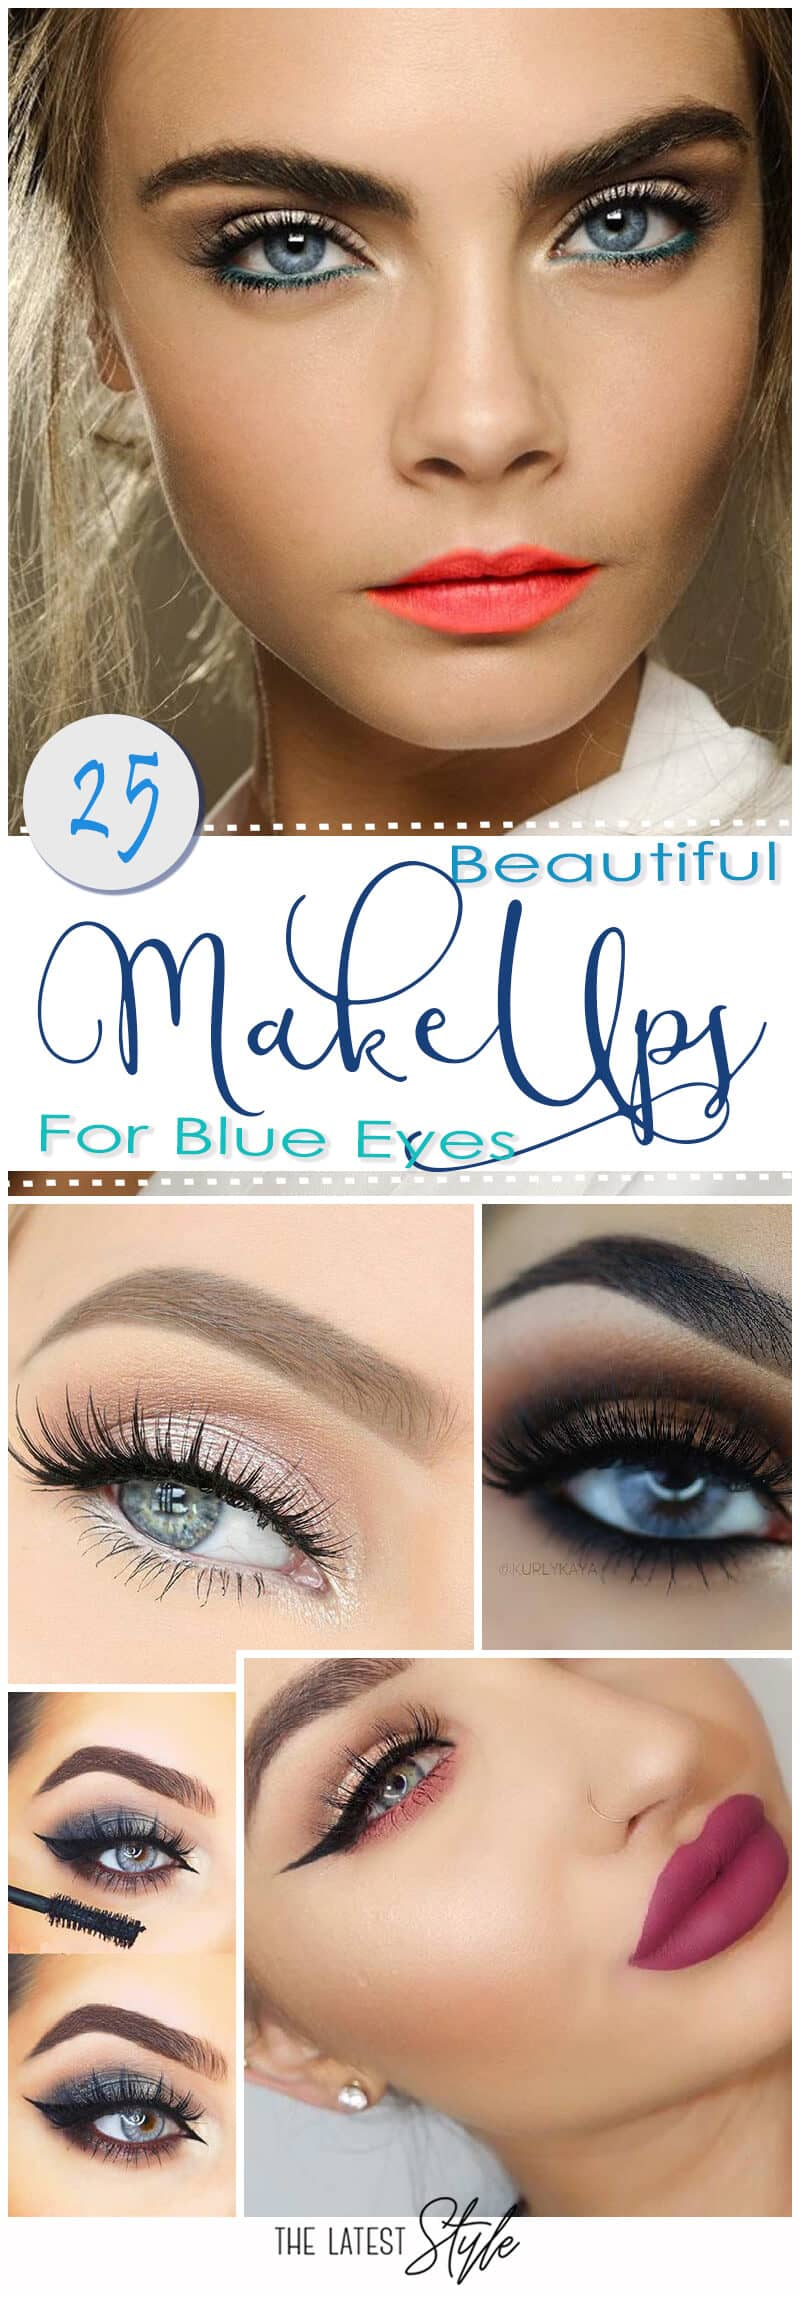 25 Beautiful Blue Eye Makeups to Make Your Eyes Pop